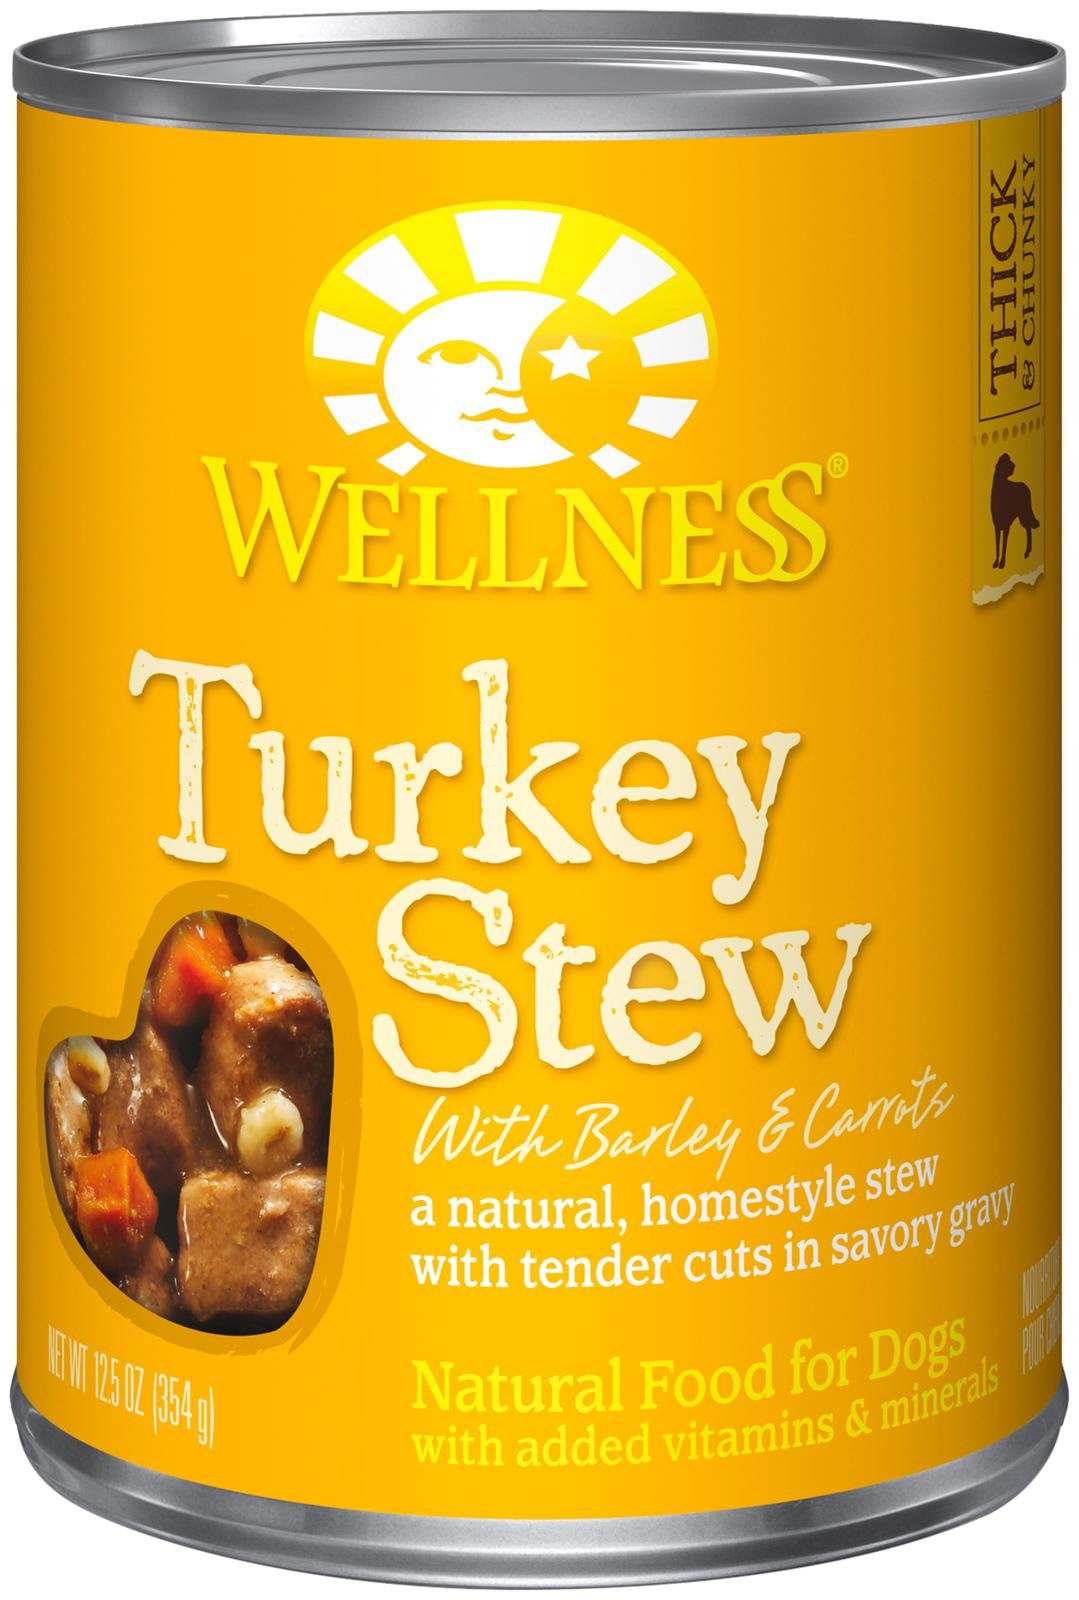 Wellness Turkey Stew 12.5oz Canned Dog Food, Case of 12